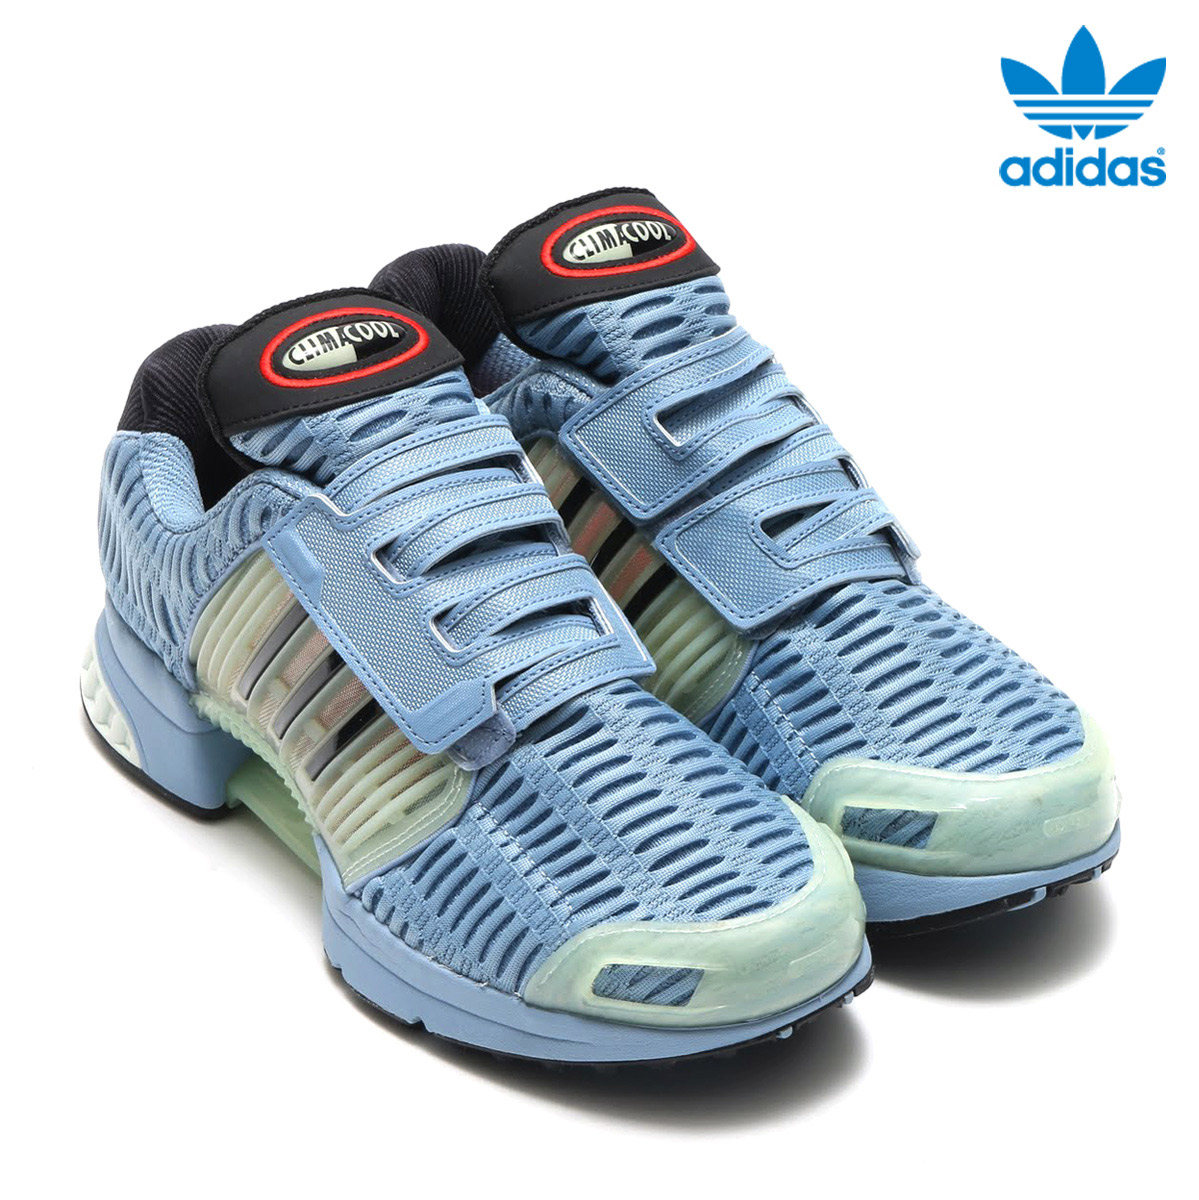 brand new 3ff3d e562a adidas Originals CLIMACOOL 1 CMF (アディダスオリジナルスクライマクール) (Tactile Blue/Core  Black/linen Blue) 17SS-I